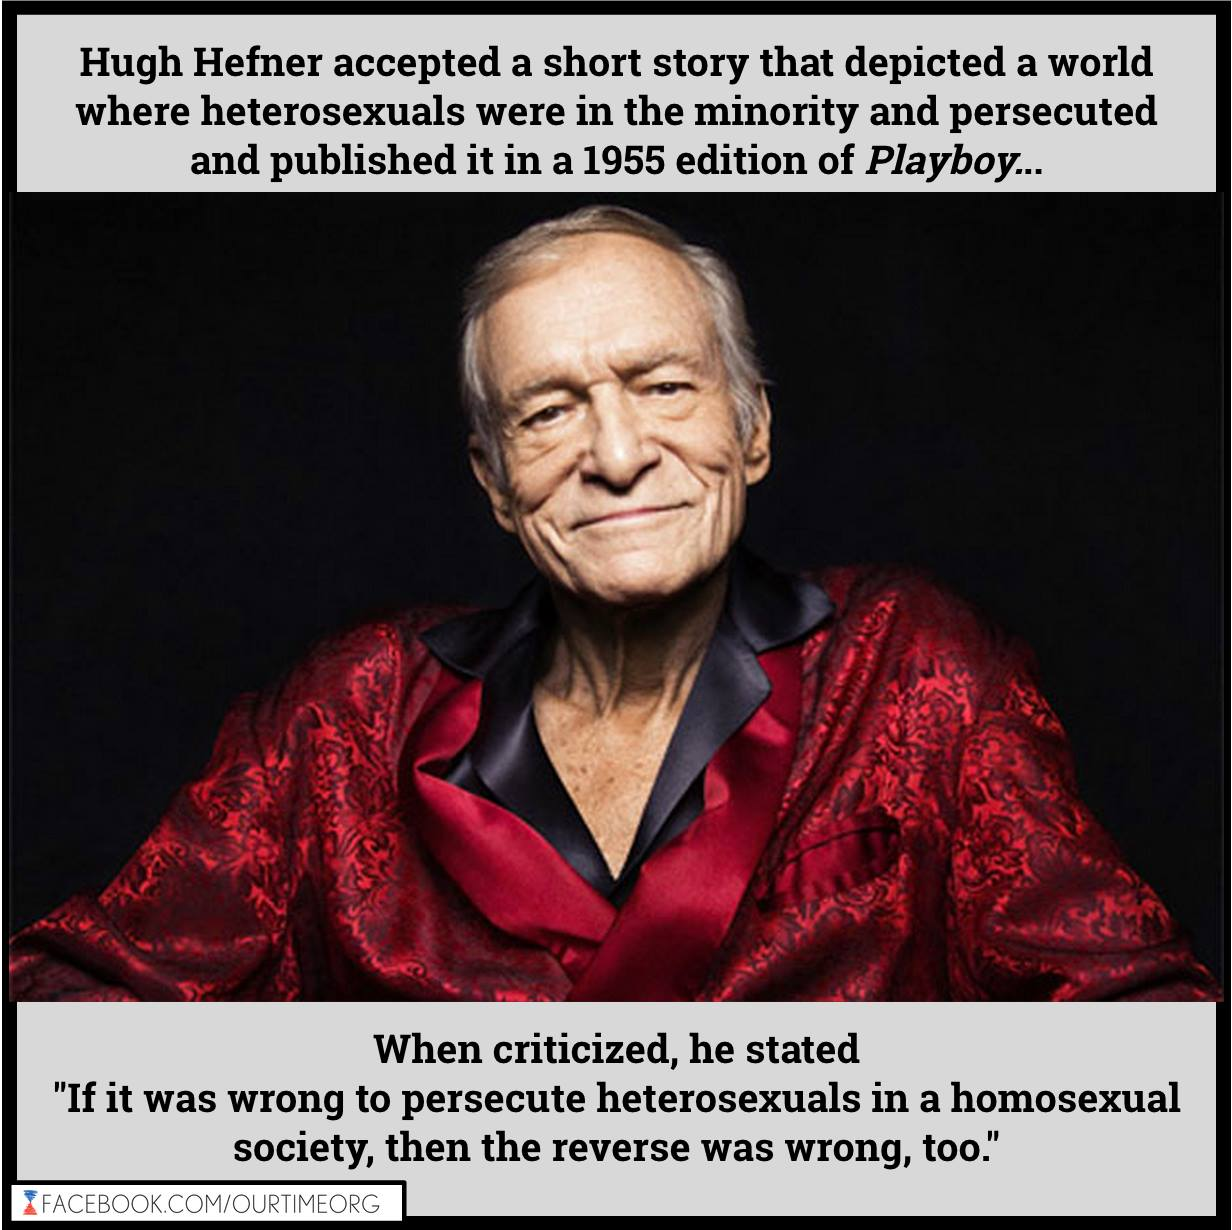 hugh hefner accept a short story that depicted a world where heterosexuals were in the minority and persecuted, if it was wrong to persecute heterosexuals in a homosexual society, then the reverse was wrong too